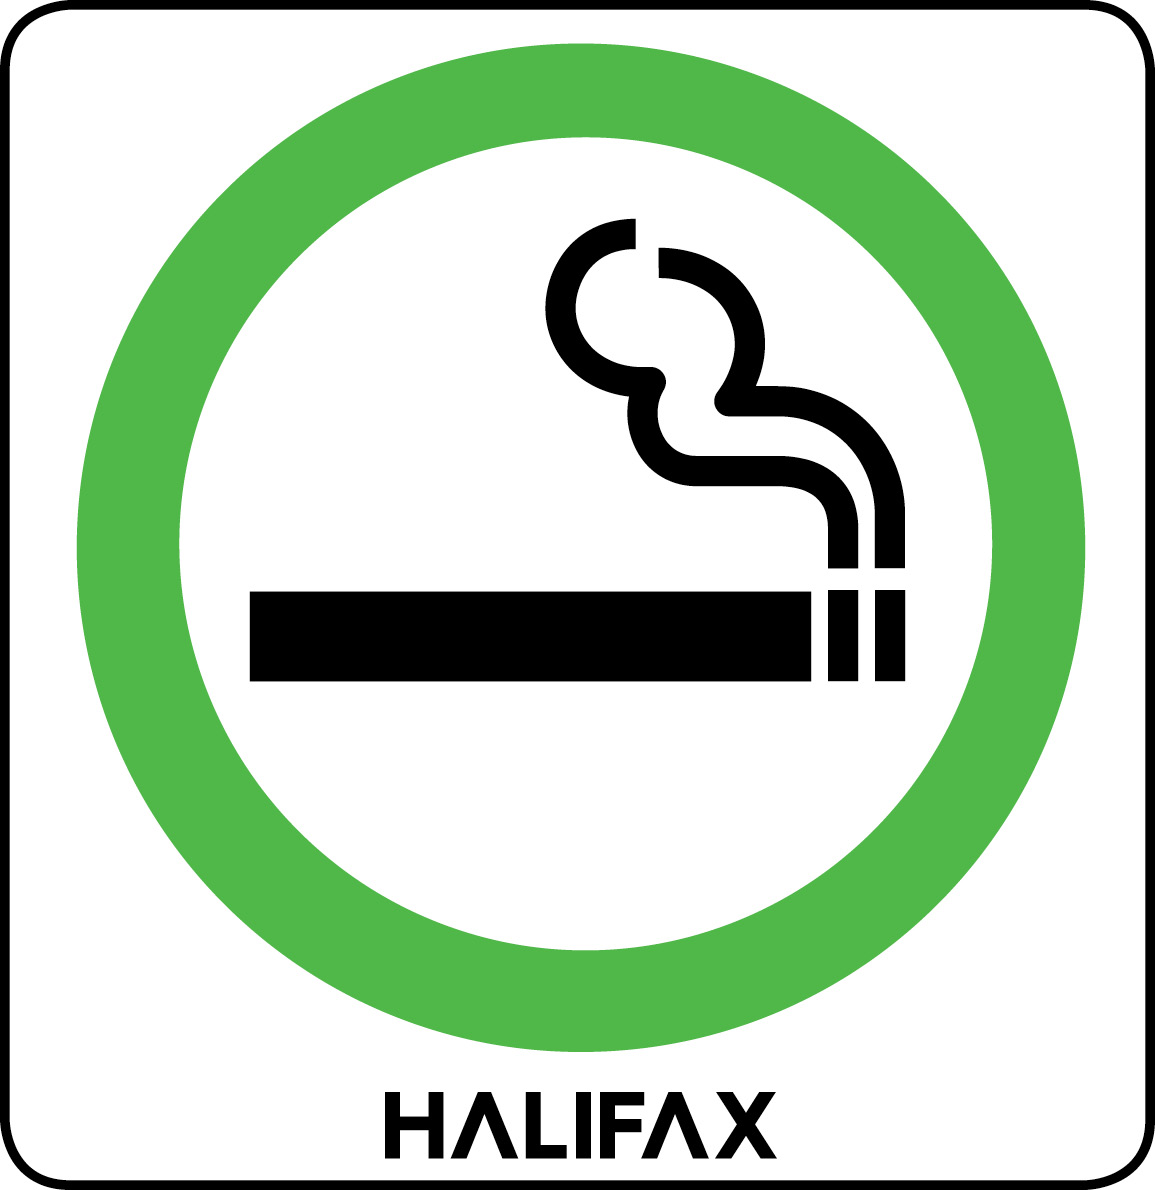 A sign with a green circle and an icon of a smoking apparatus is shown